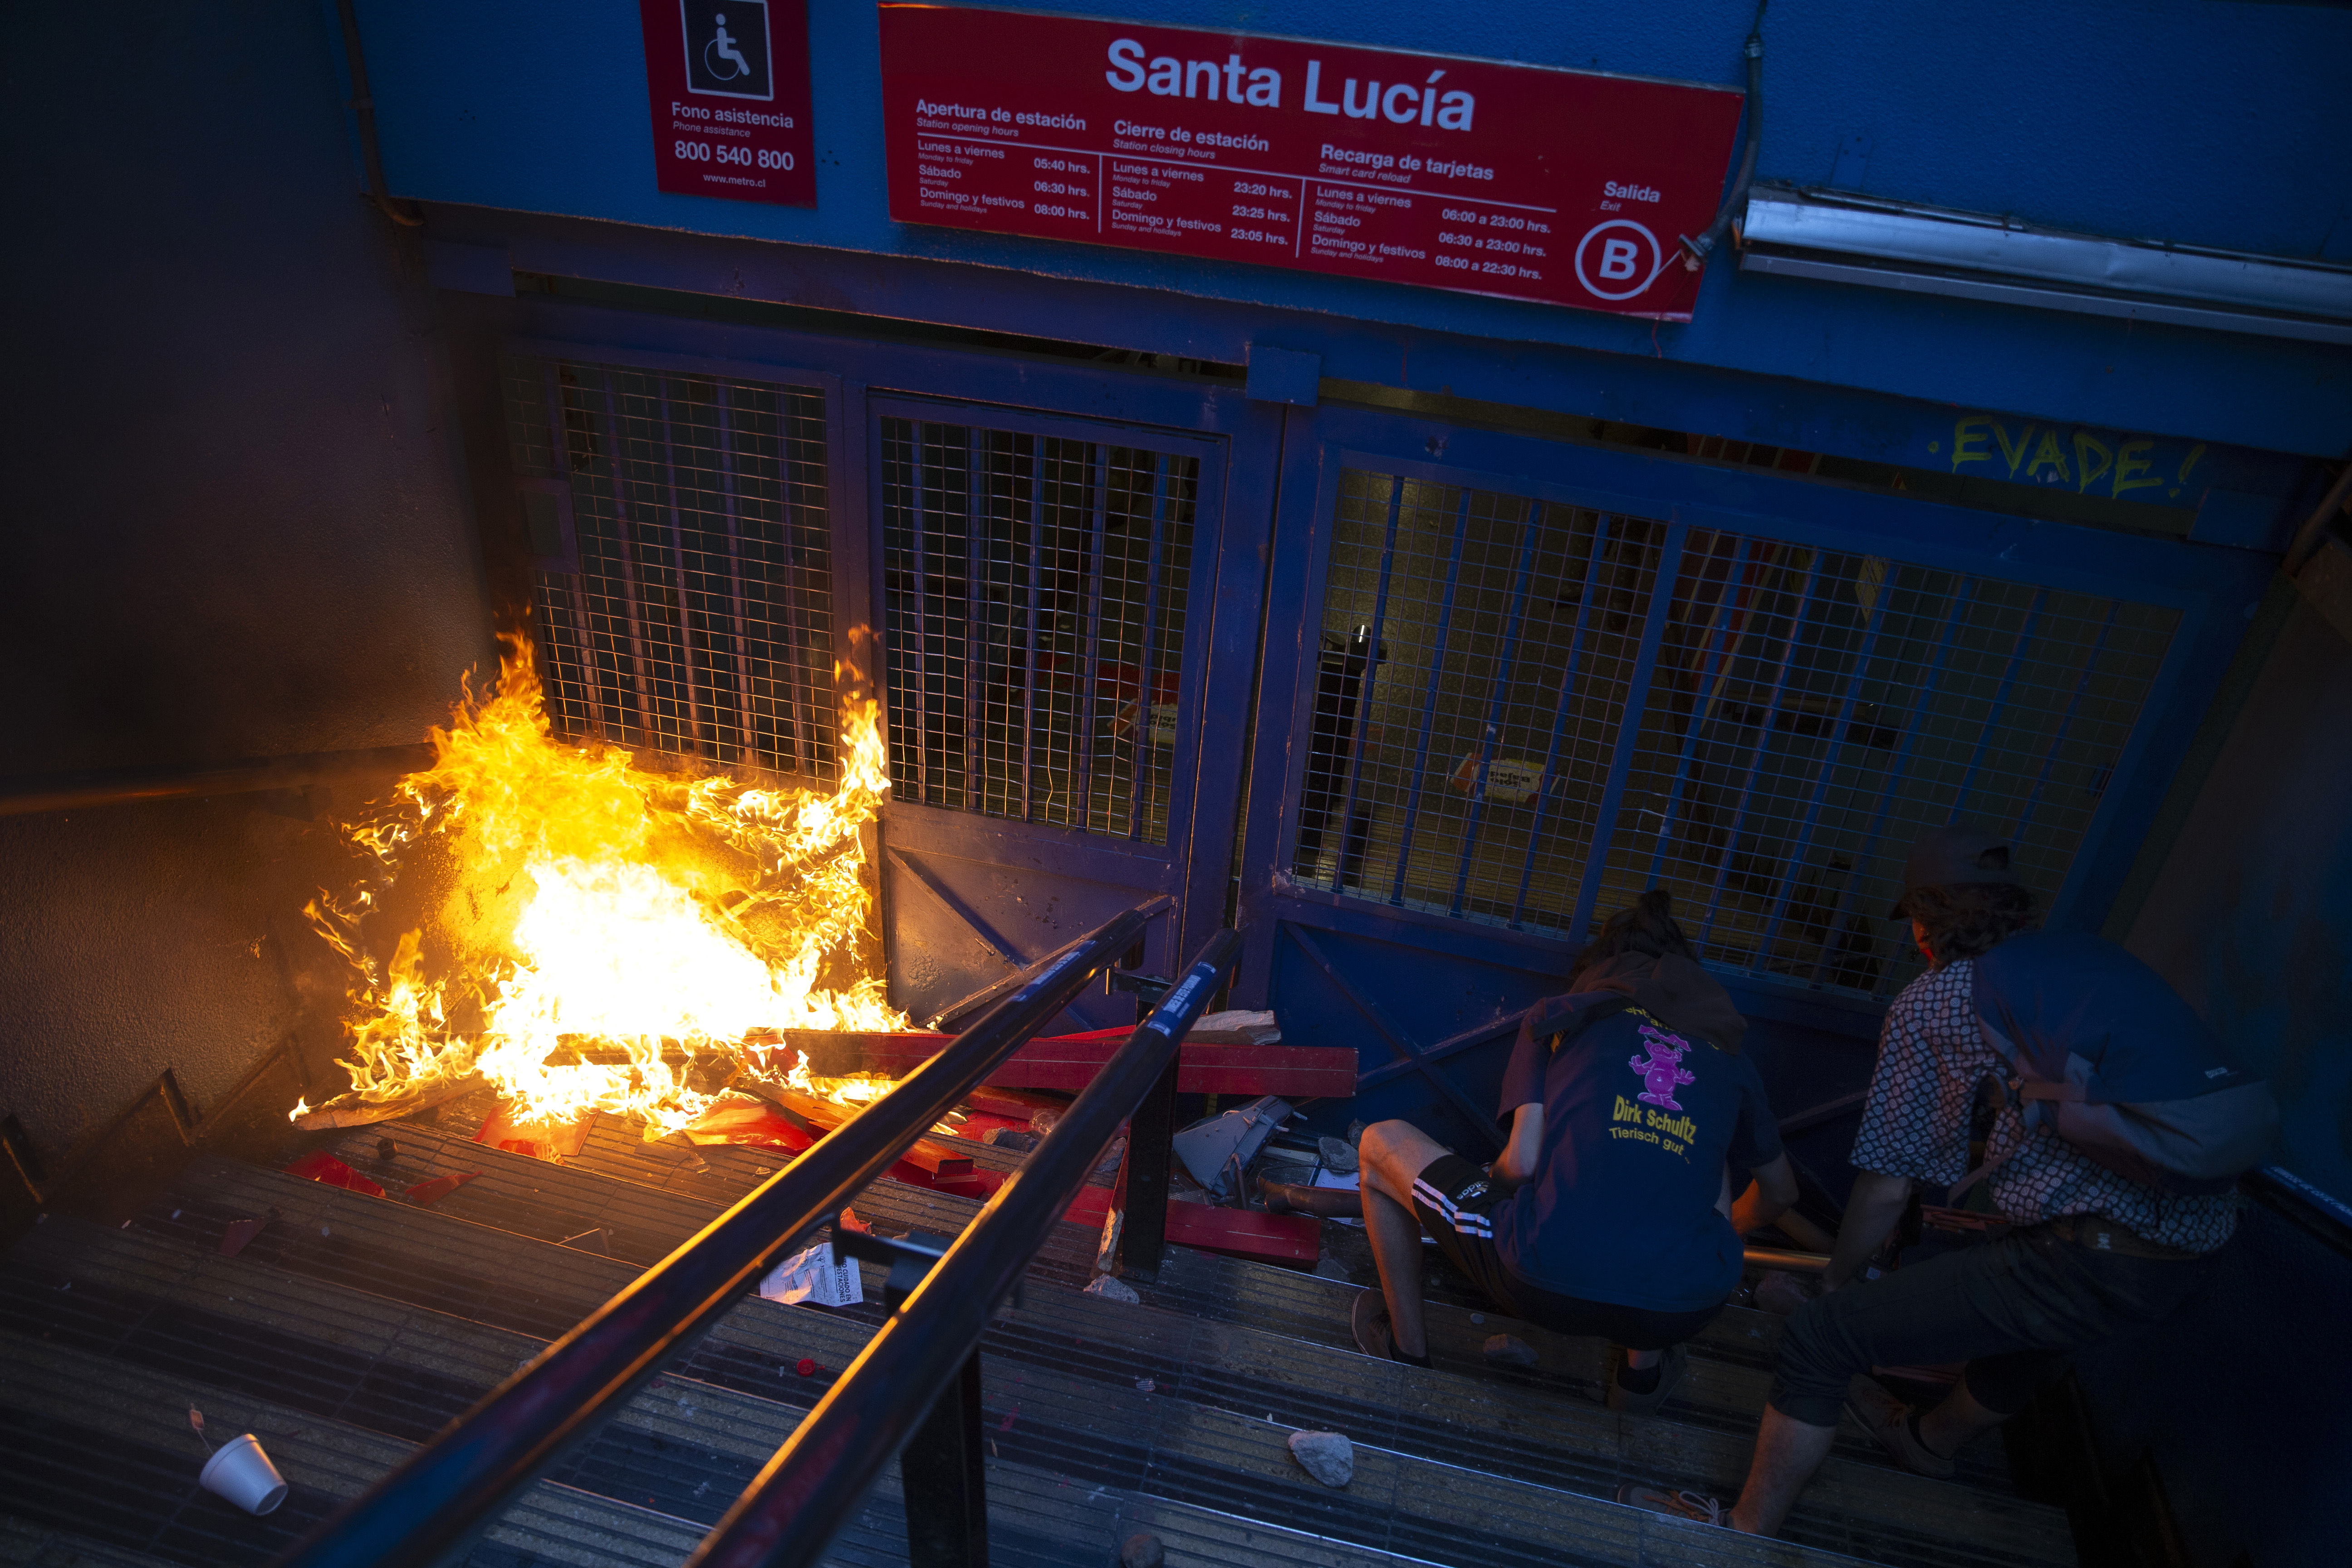 Protesters push a bicycle in front of a gate of the Santa Lucia subway station during a protest against the rising cost of subway and bus fares, in Santiago, Friday, Oct. 18, 2019. (AP Photo/Esteban Felix)